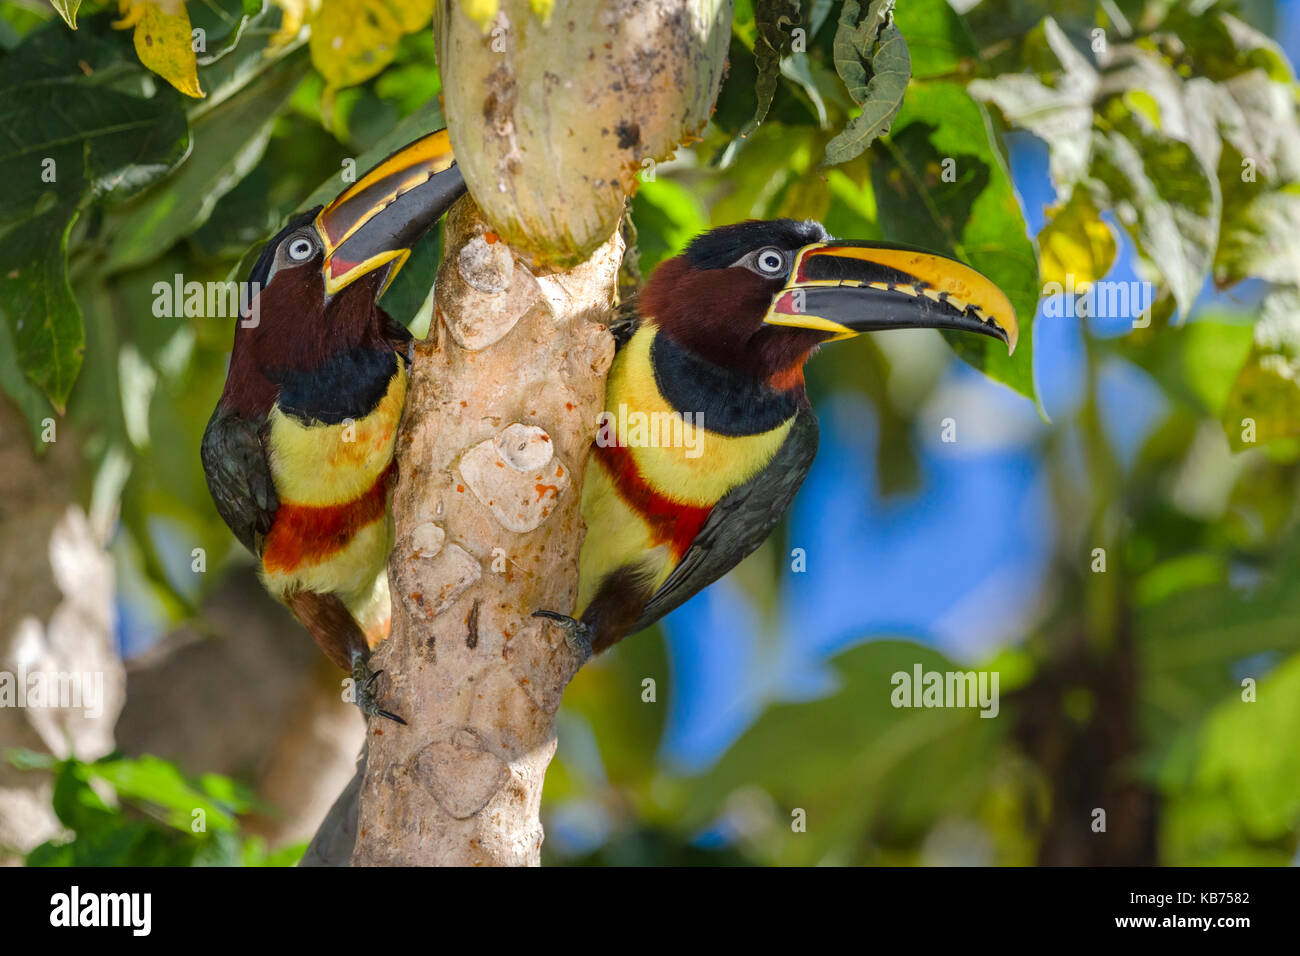 Chestnut-eared Aracaris (Pteroglossus castanotis) pair in a tree, Brazil, Mato Grosso, Pantanal - Stock Image